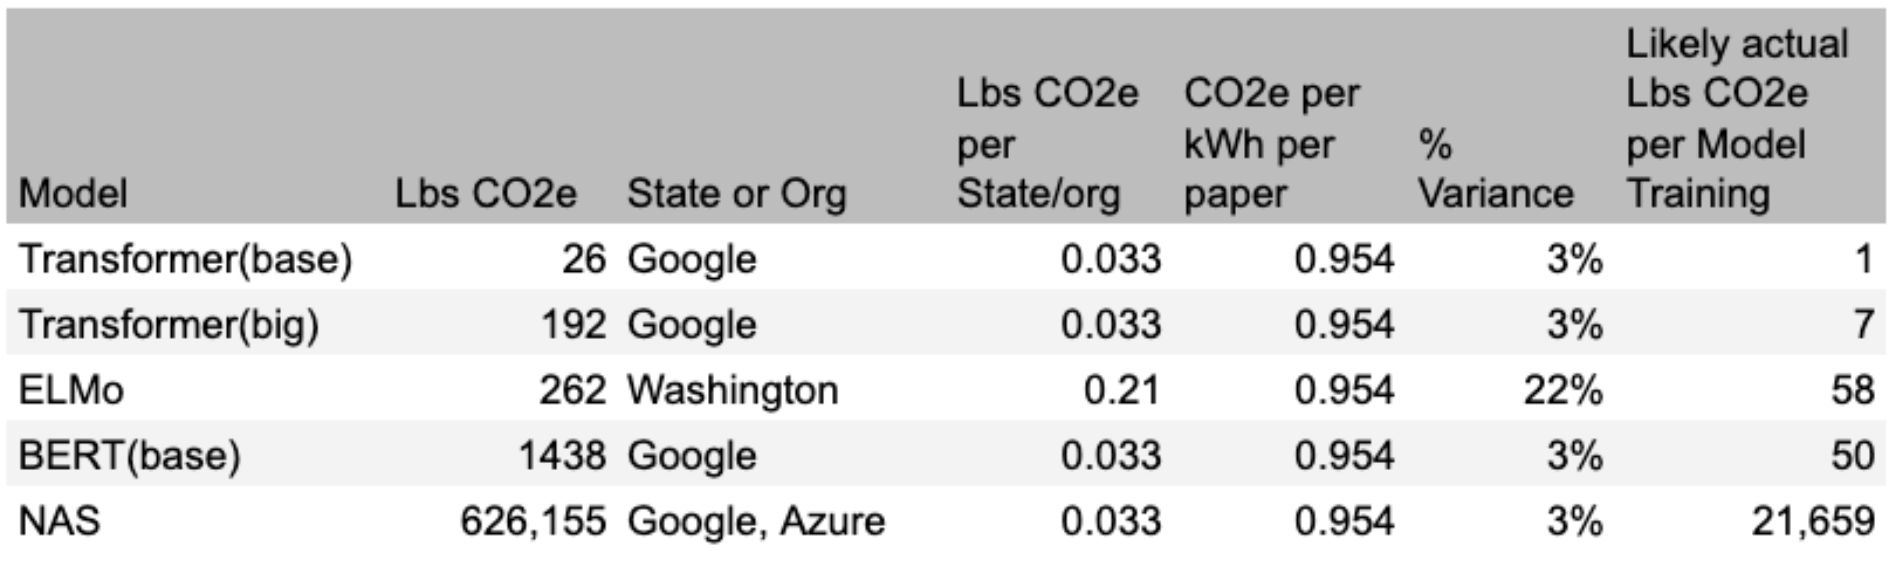 Table of neural net model training from paper with extension of actual CO2e